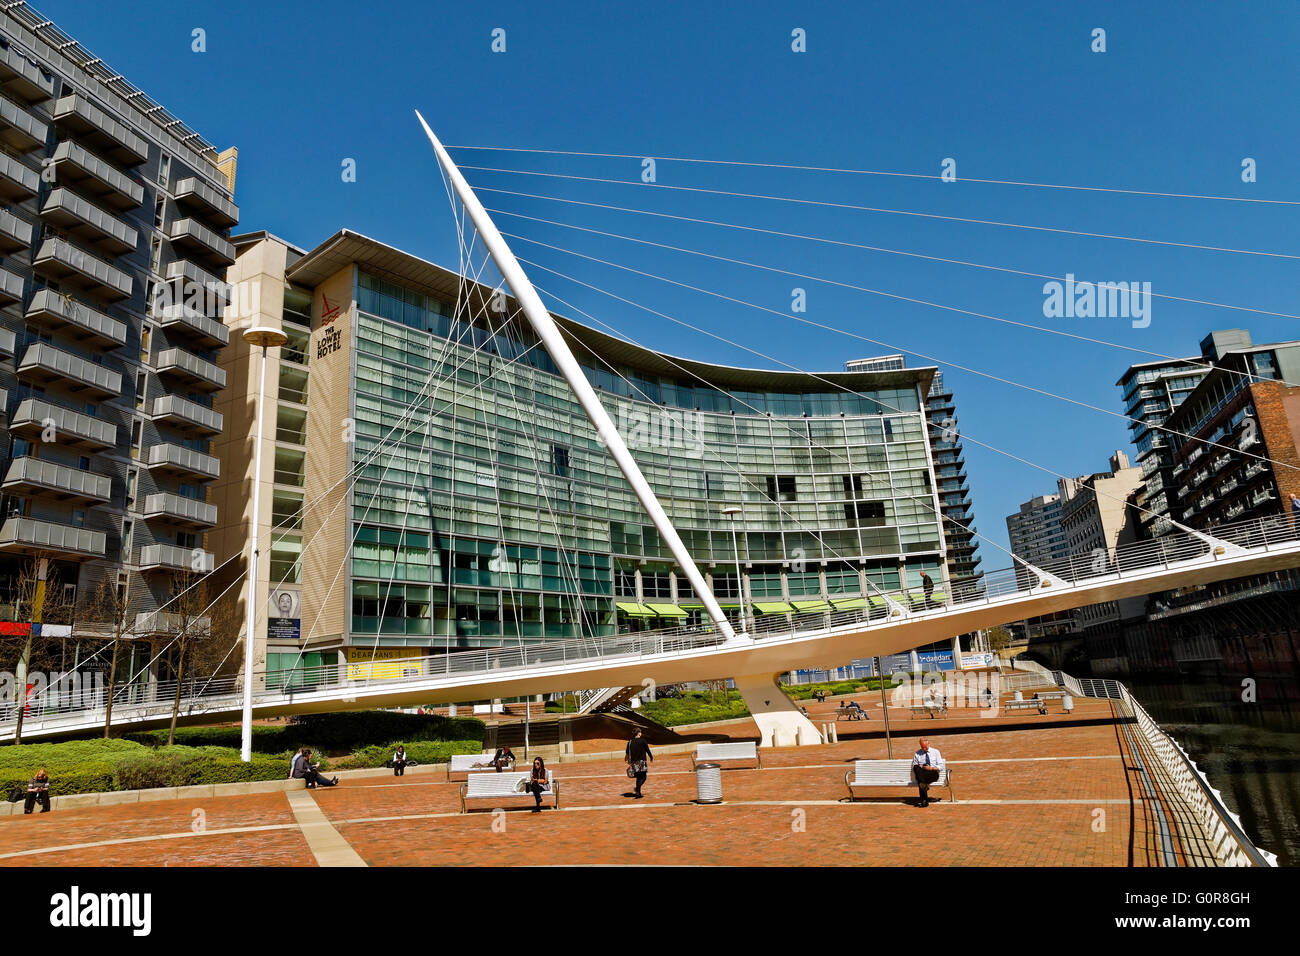 The Lowry Hotel and Trinity Bridge over the River Irwell, City of Salford, Greater Manchester, England - Stock Image